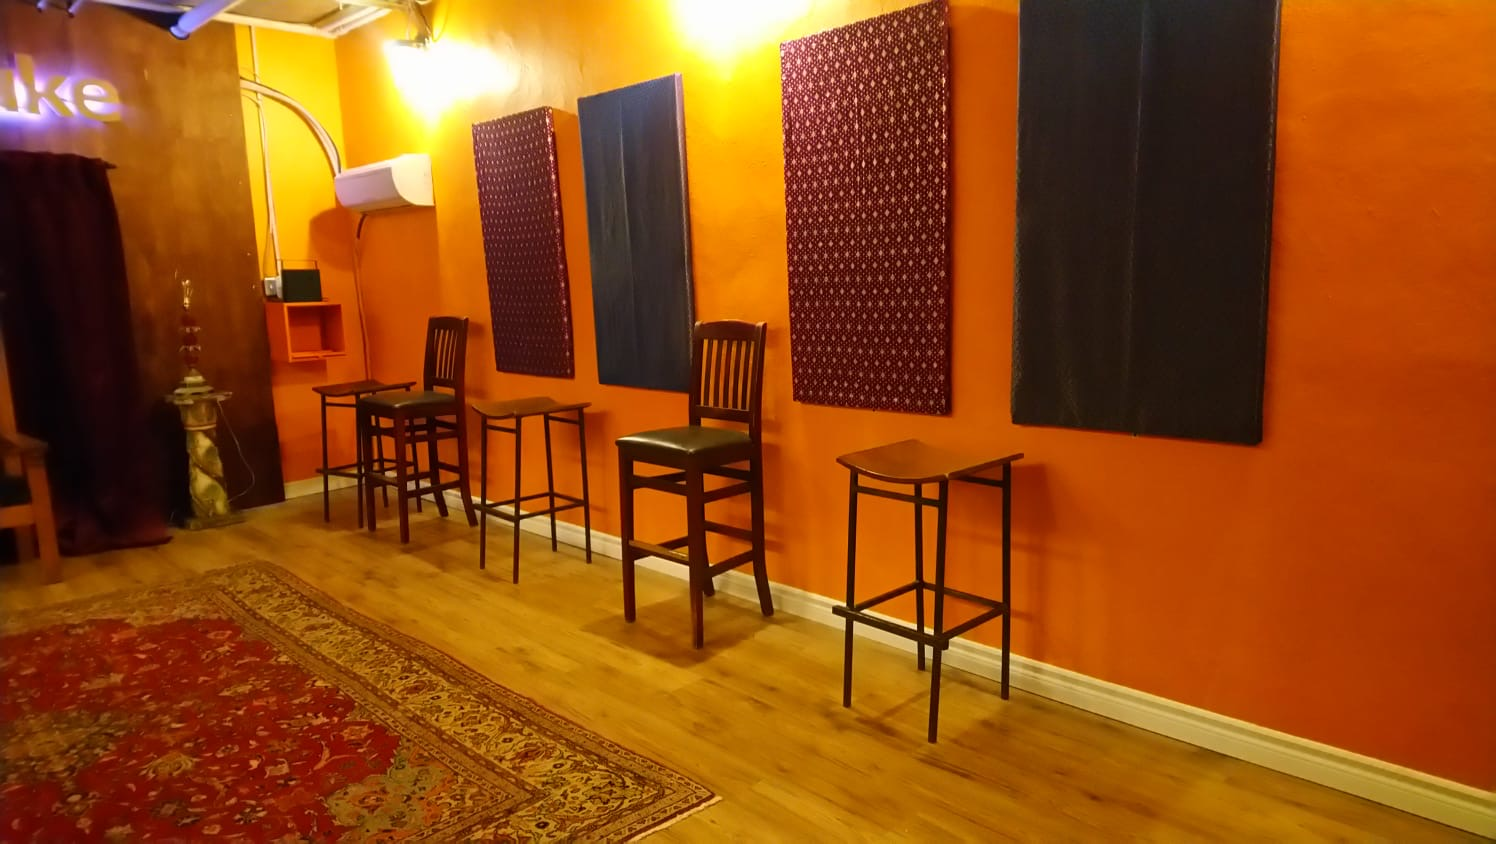 Roncesvalles-area studio is a well-equipped event space which doubles as a recording studio and triples as a video production studio